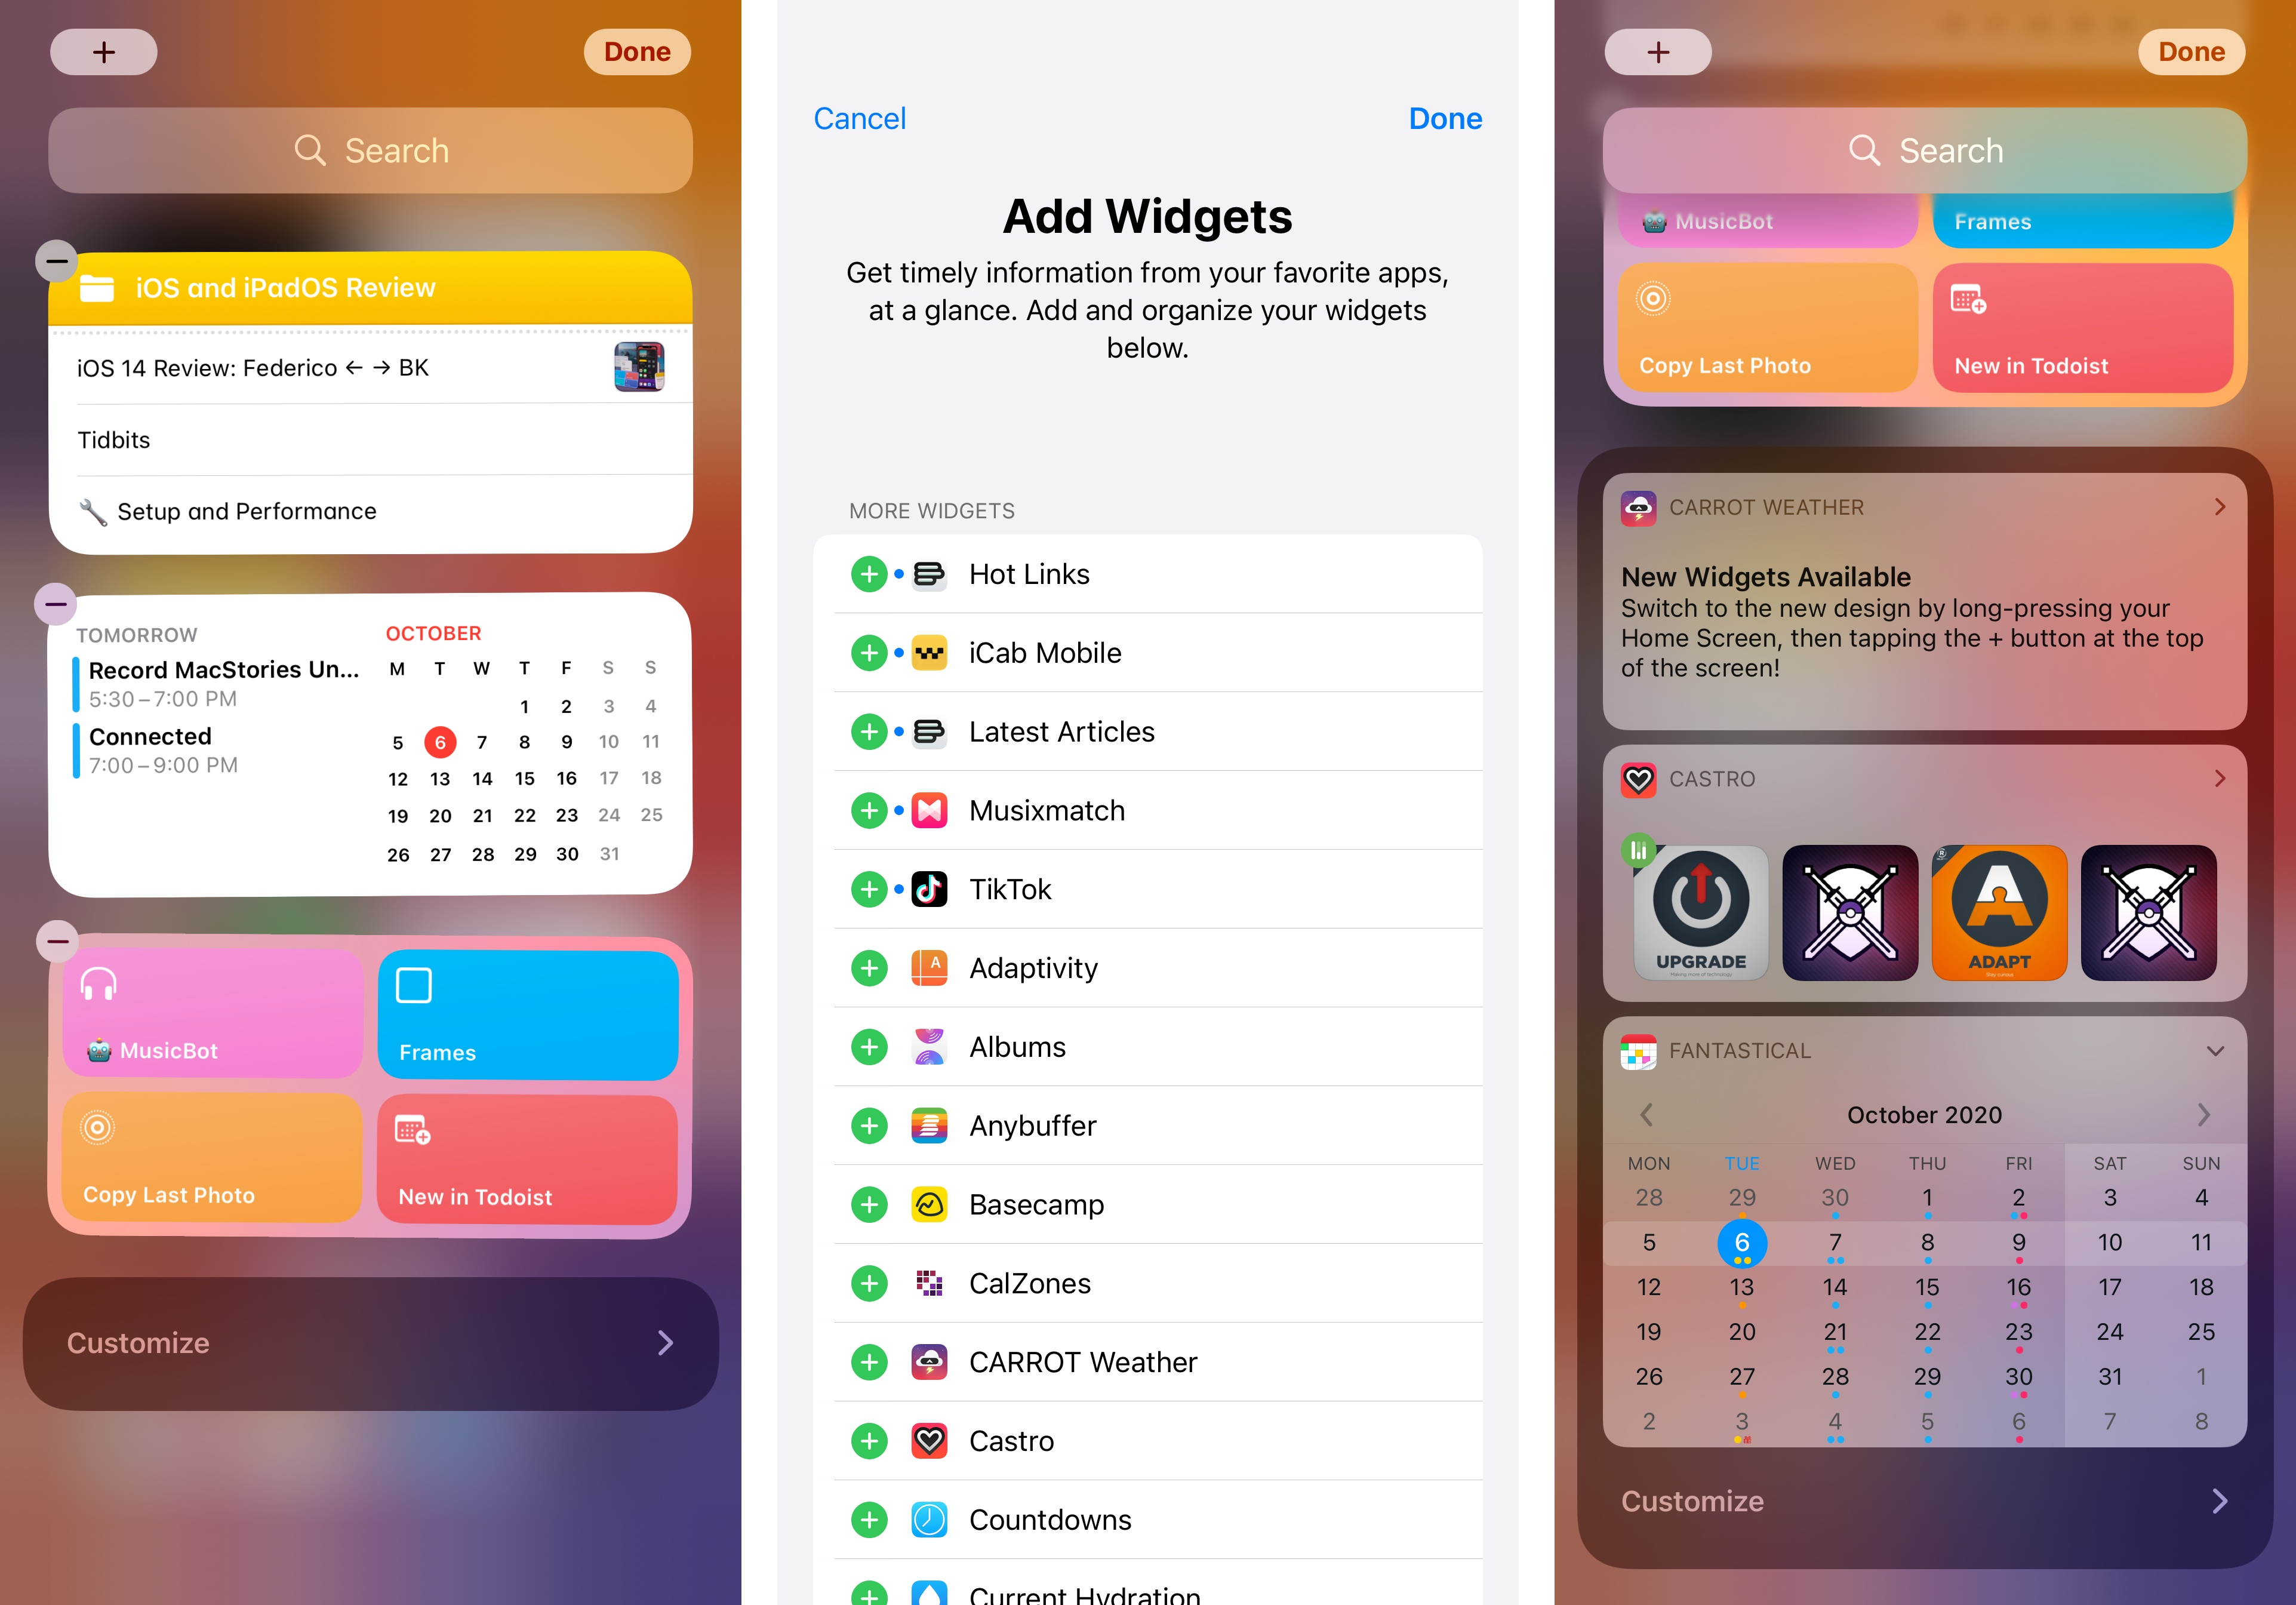 You can still install and use legacy widgets in iOS 14.